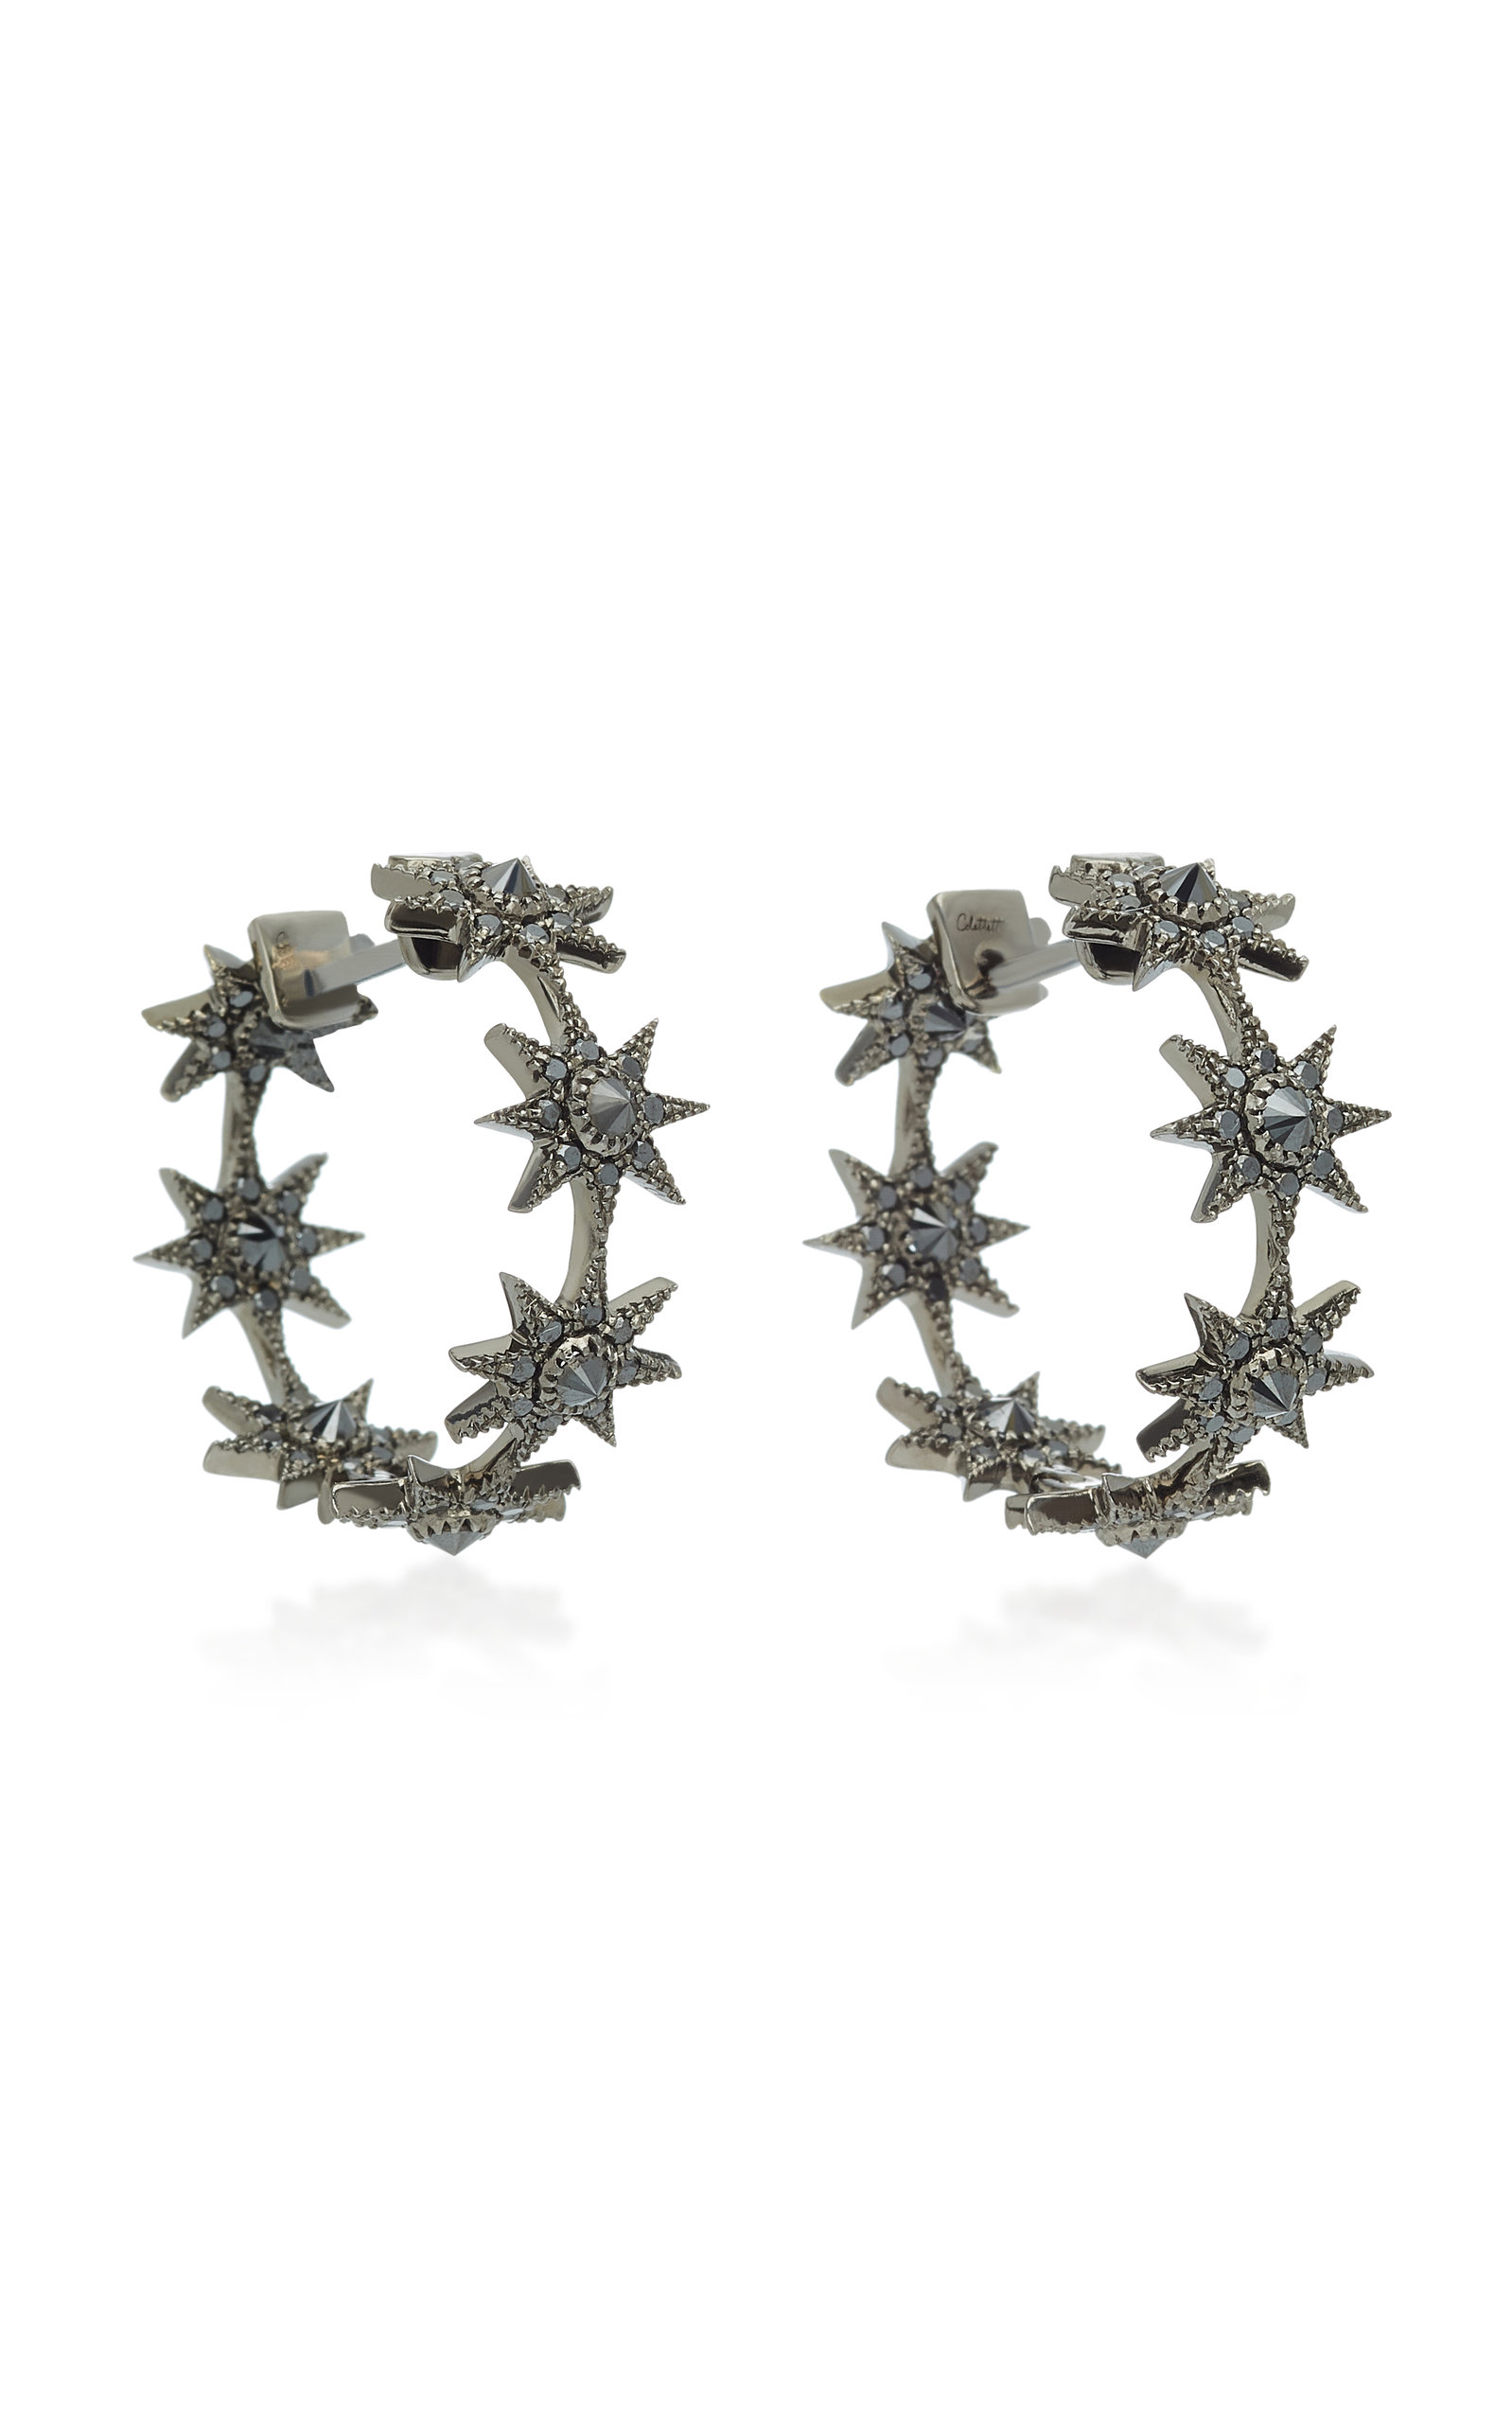 COLETTE JEWELRY BABY STAR 18K GOLD BLACK DIAMOND EARRINGS